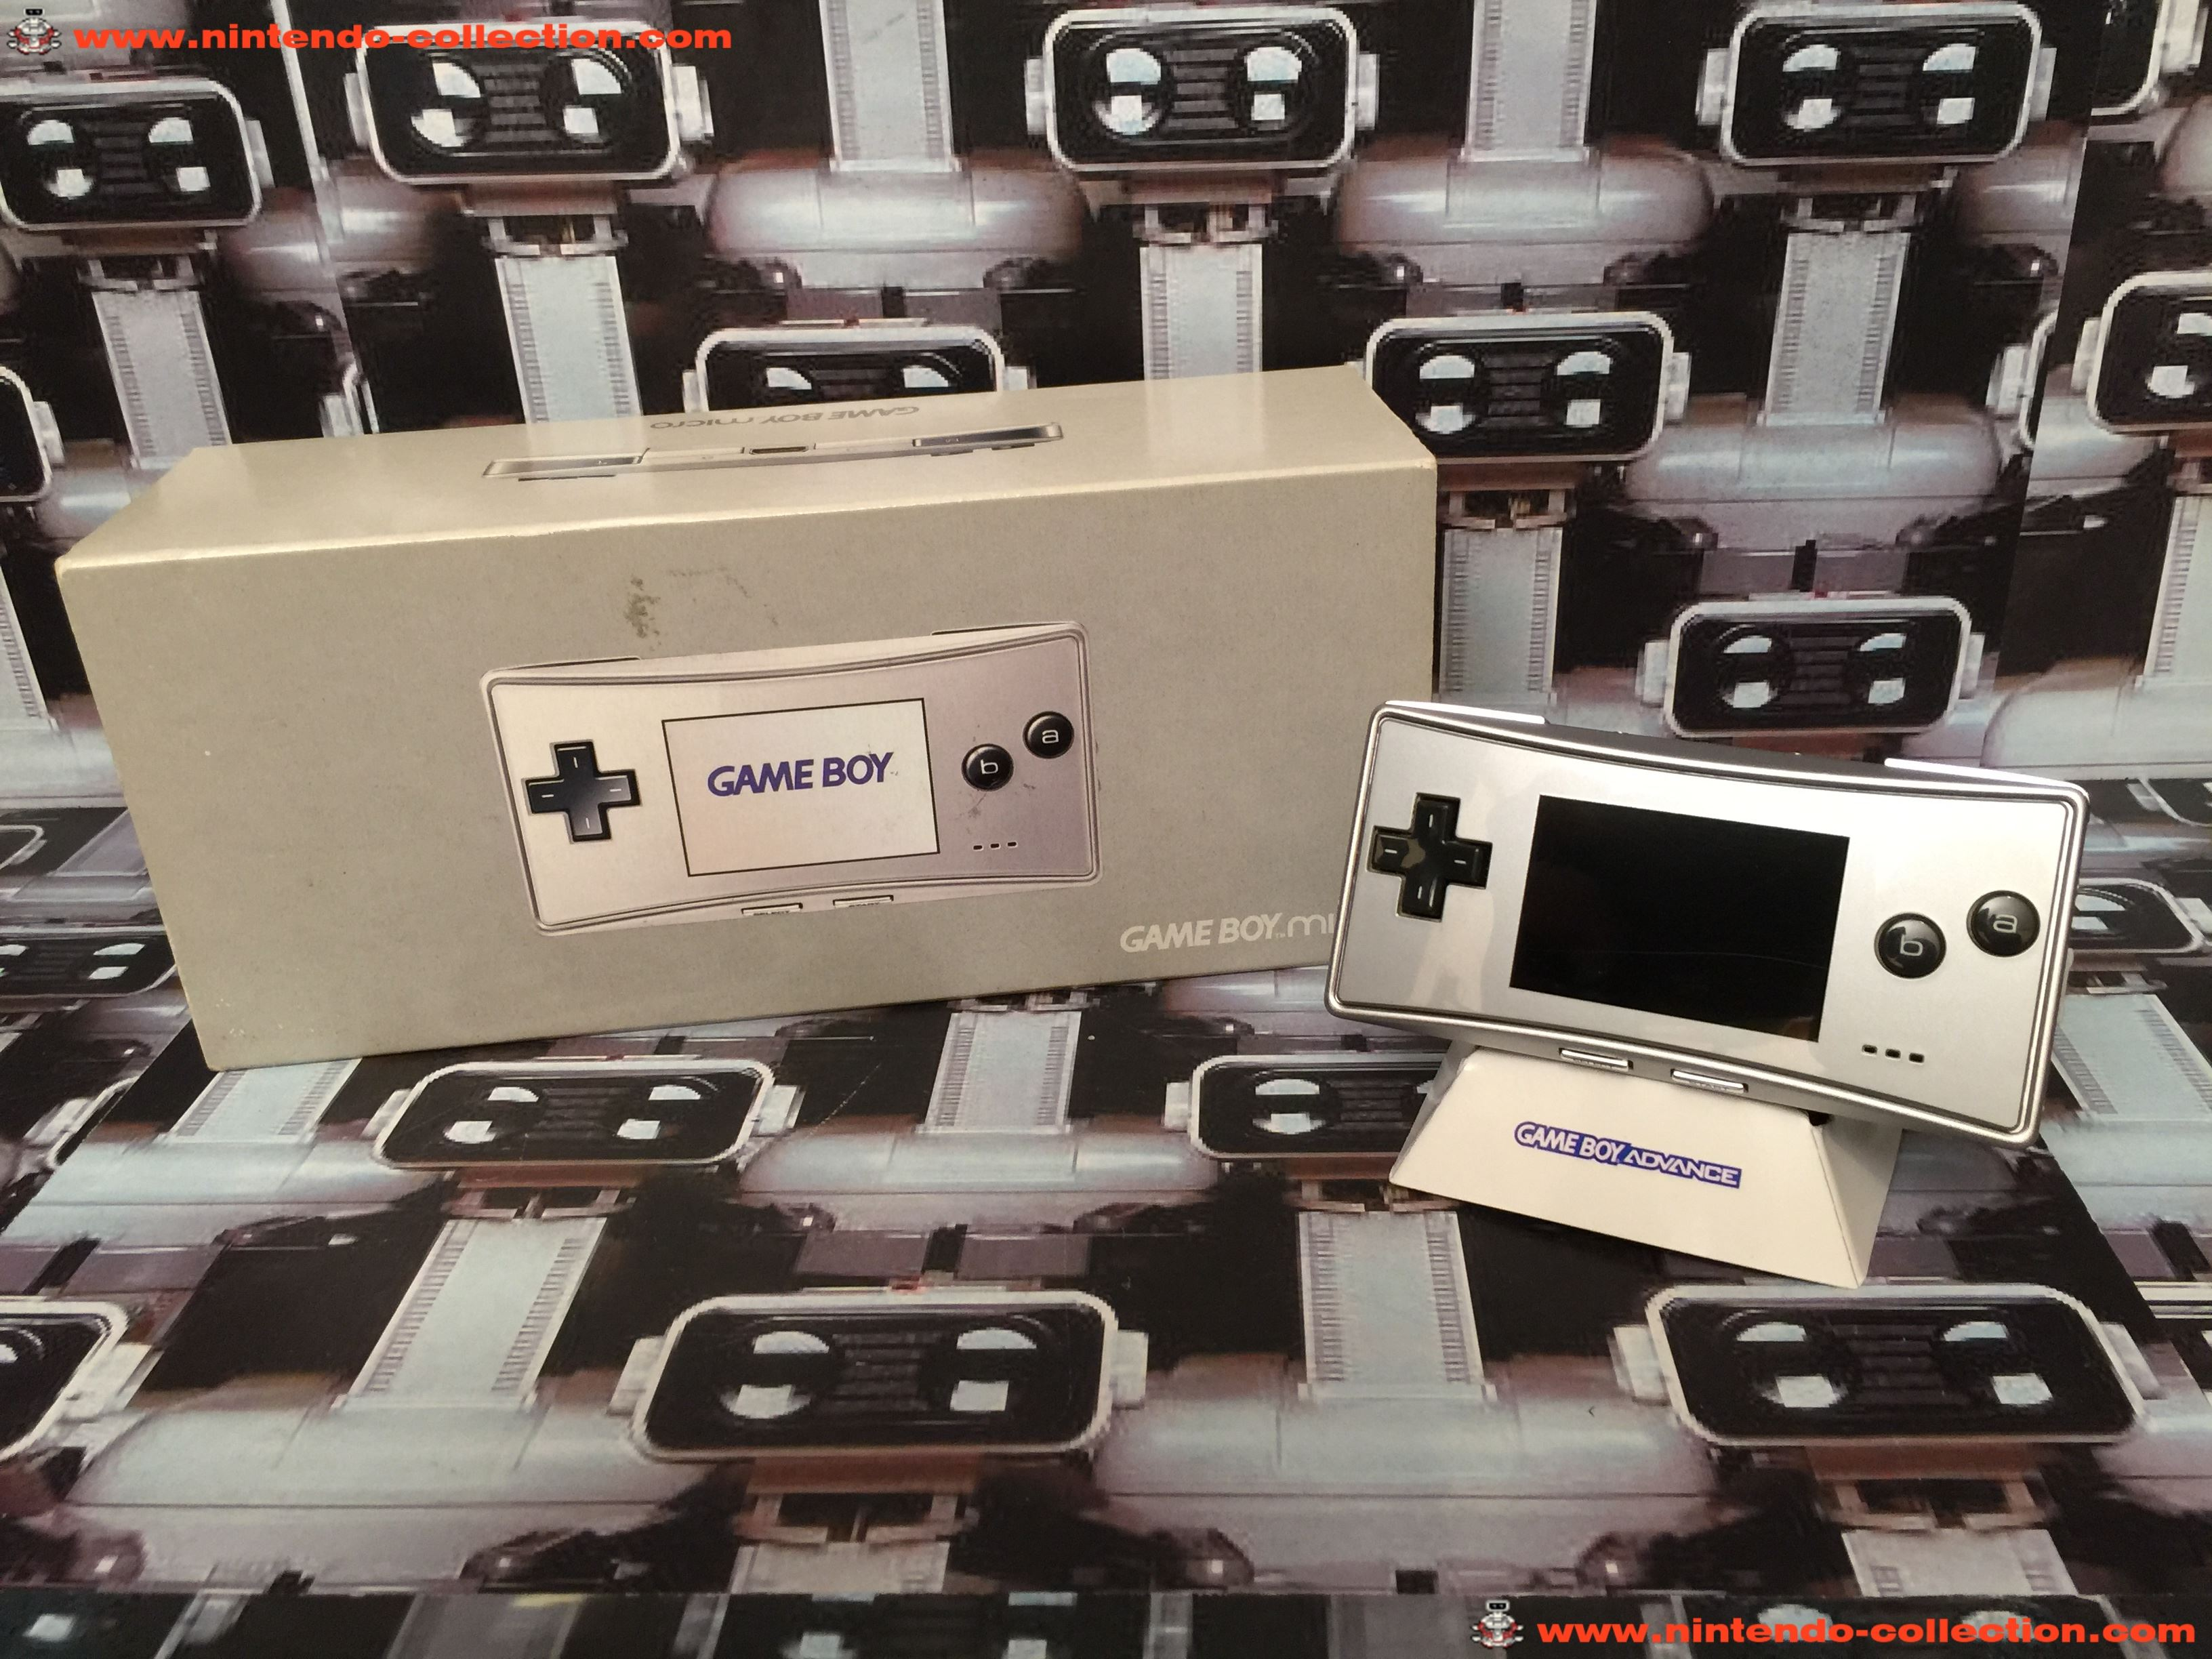 www.nintendo-collection.com - Gameboy Advance GBA Micro Grey Grise european version europeenne versi